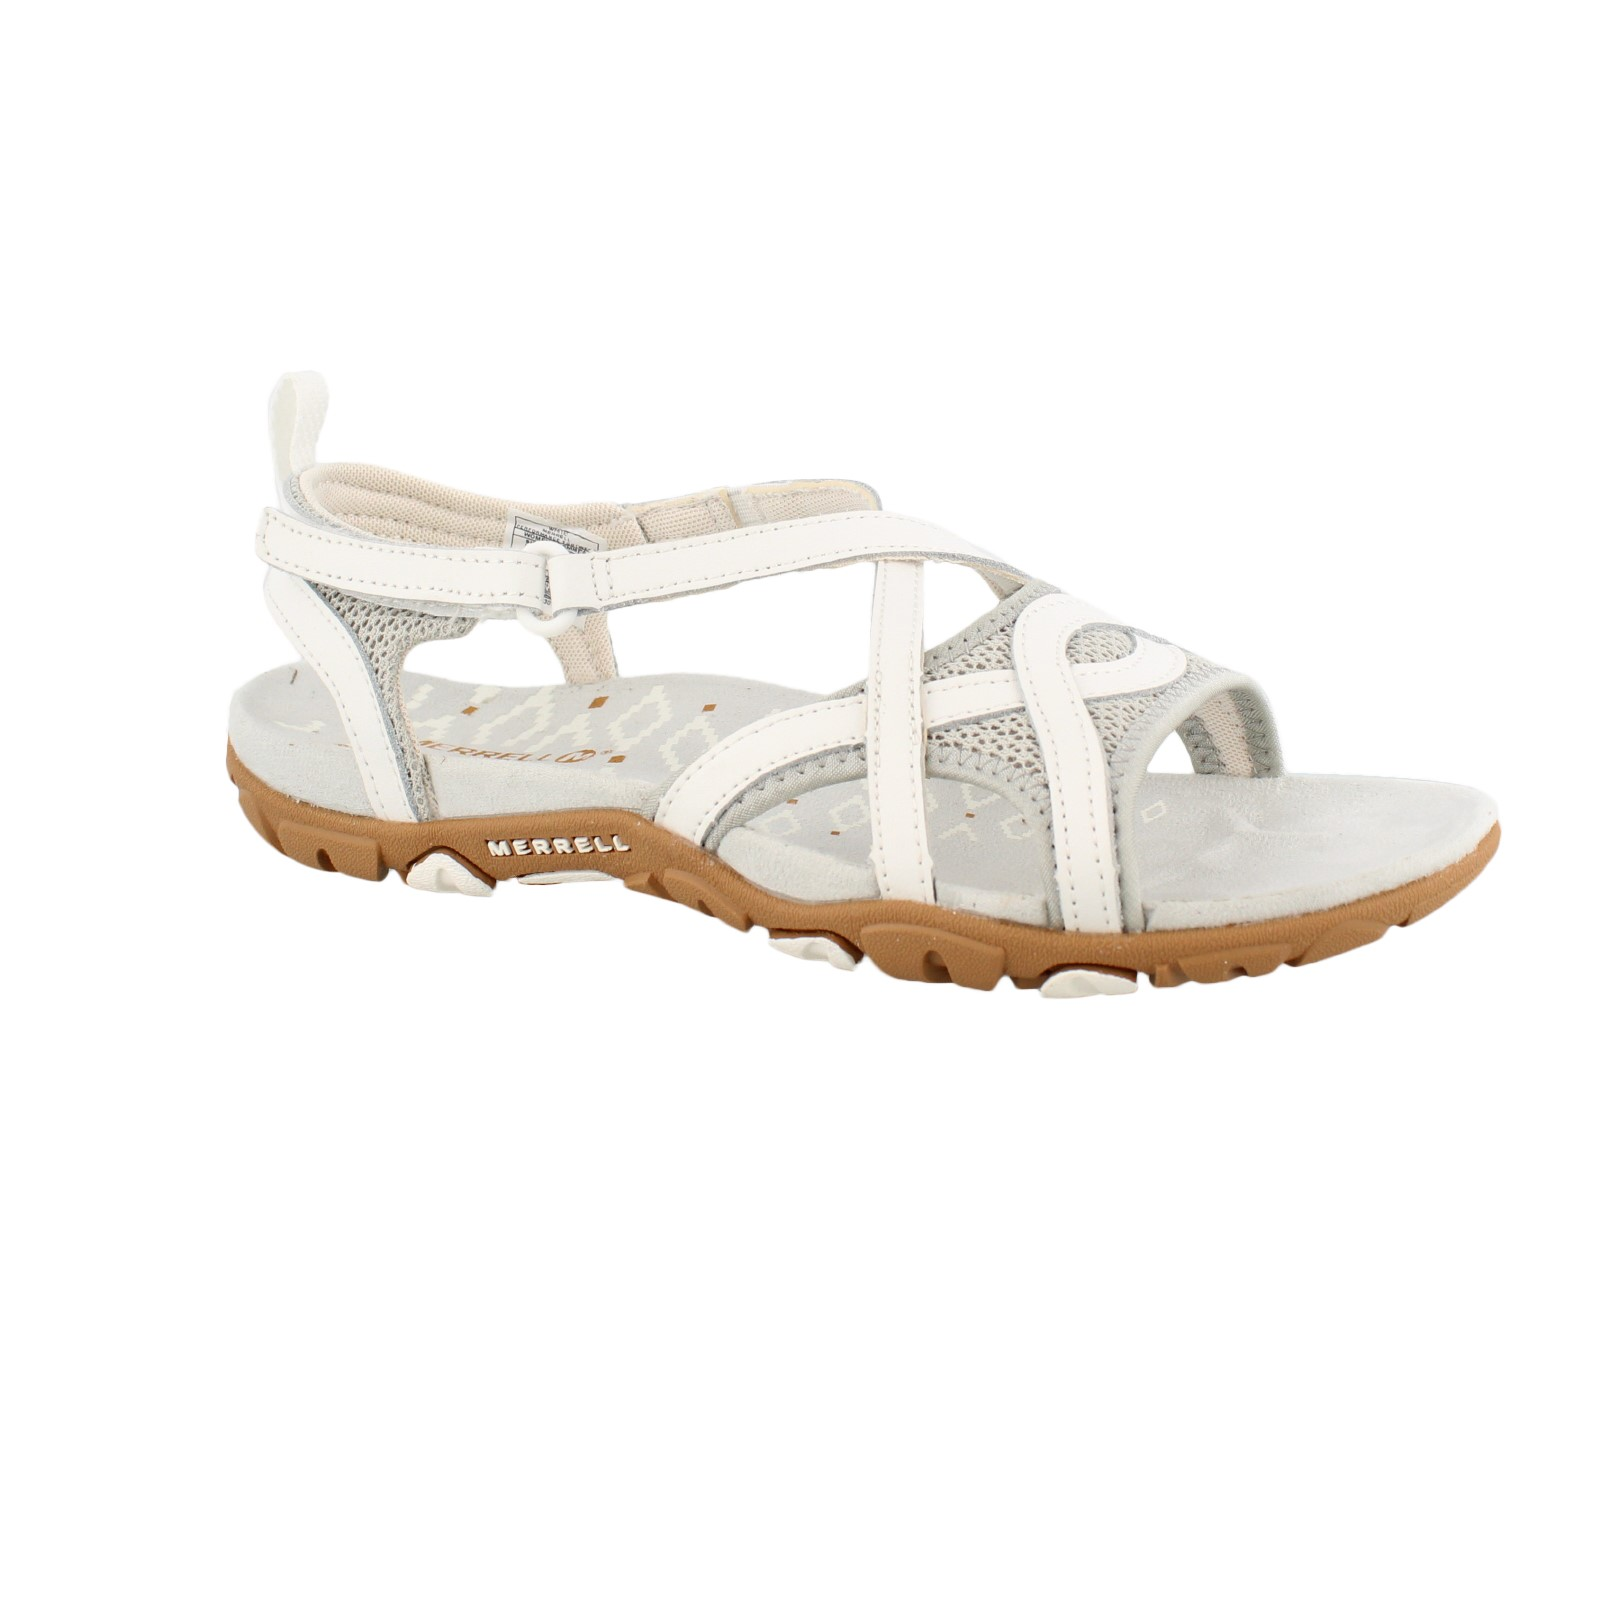 f5d6842a111d Next. add to favorites. Women s Merrell